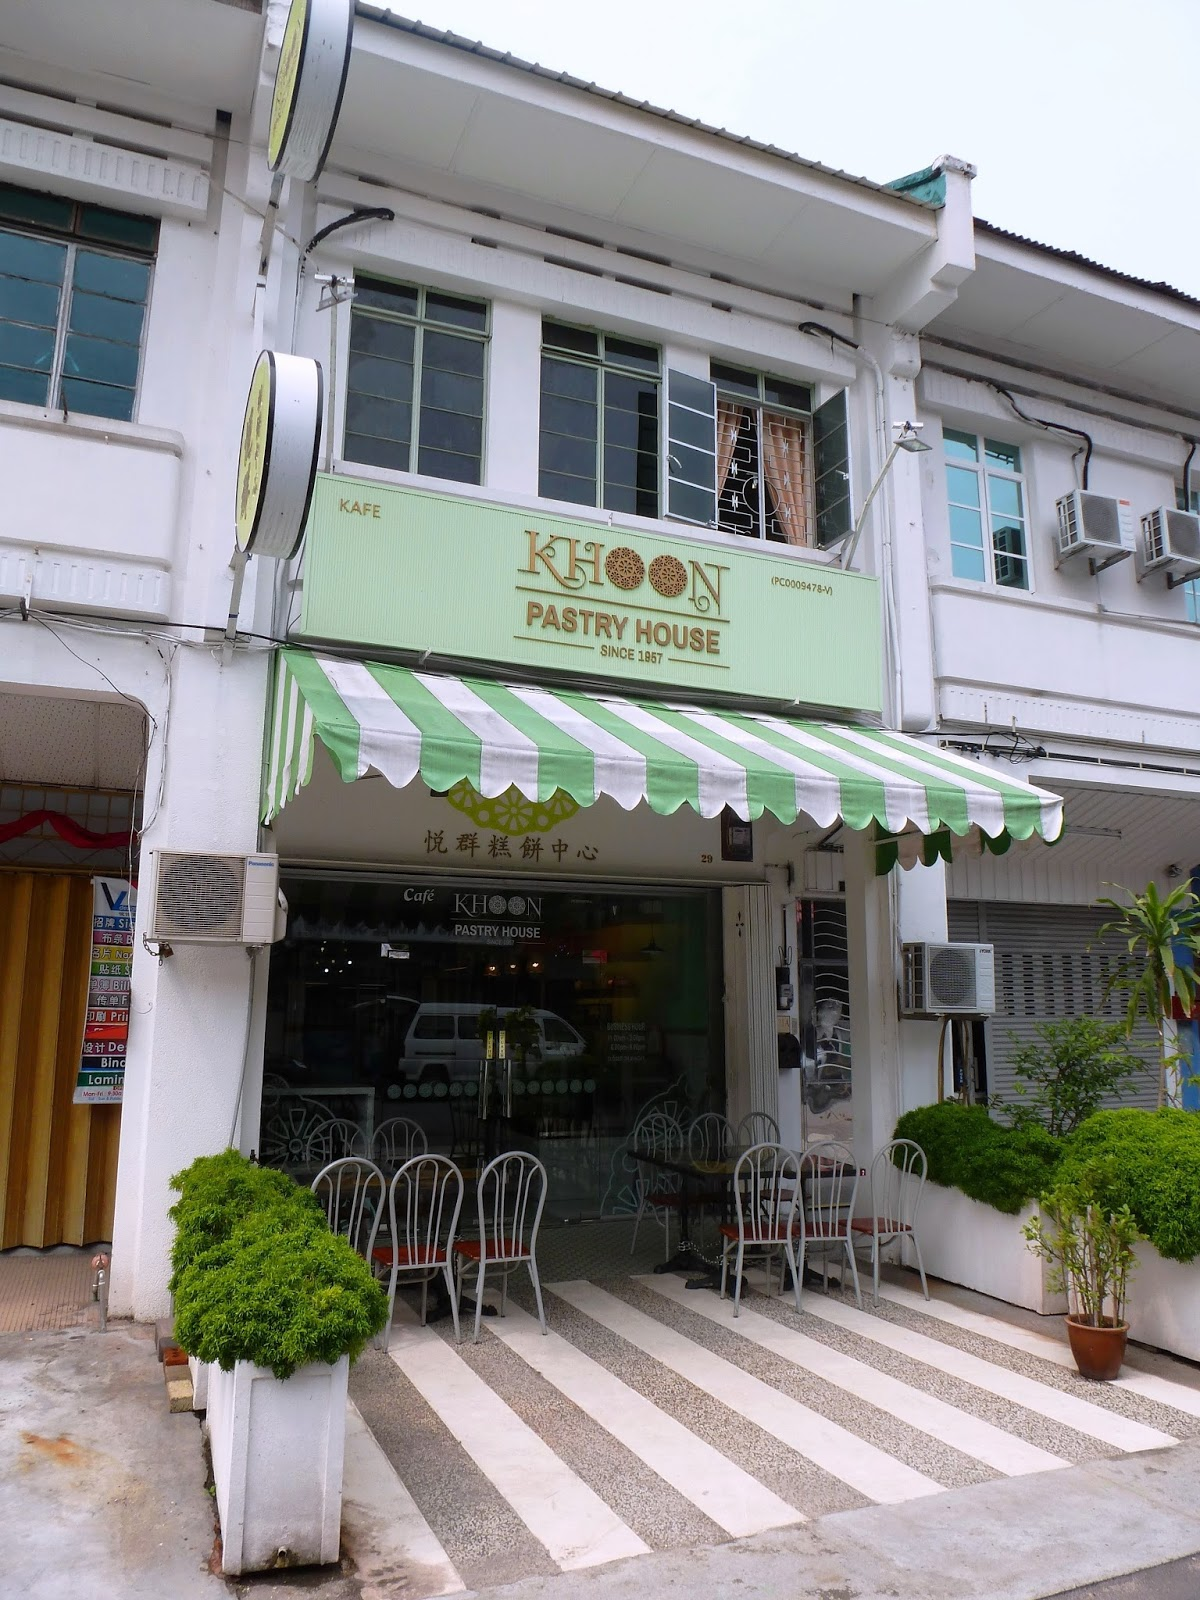 Khoon Pastry House Cafe